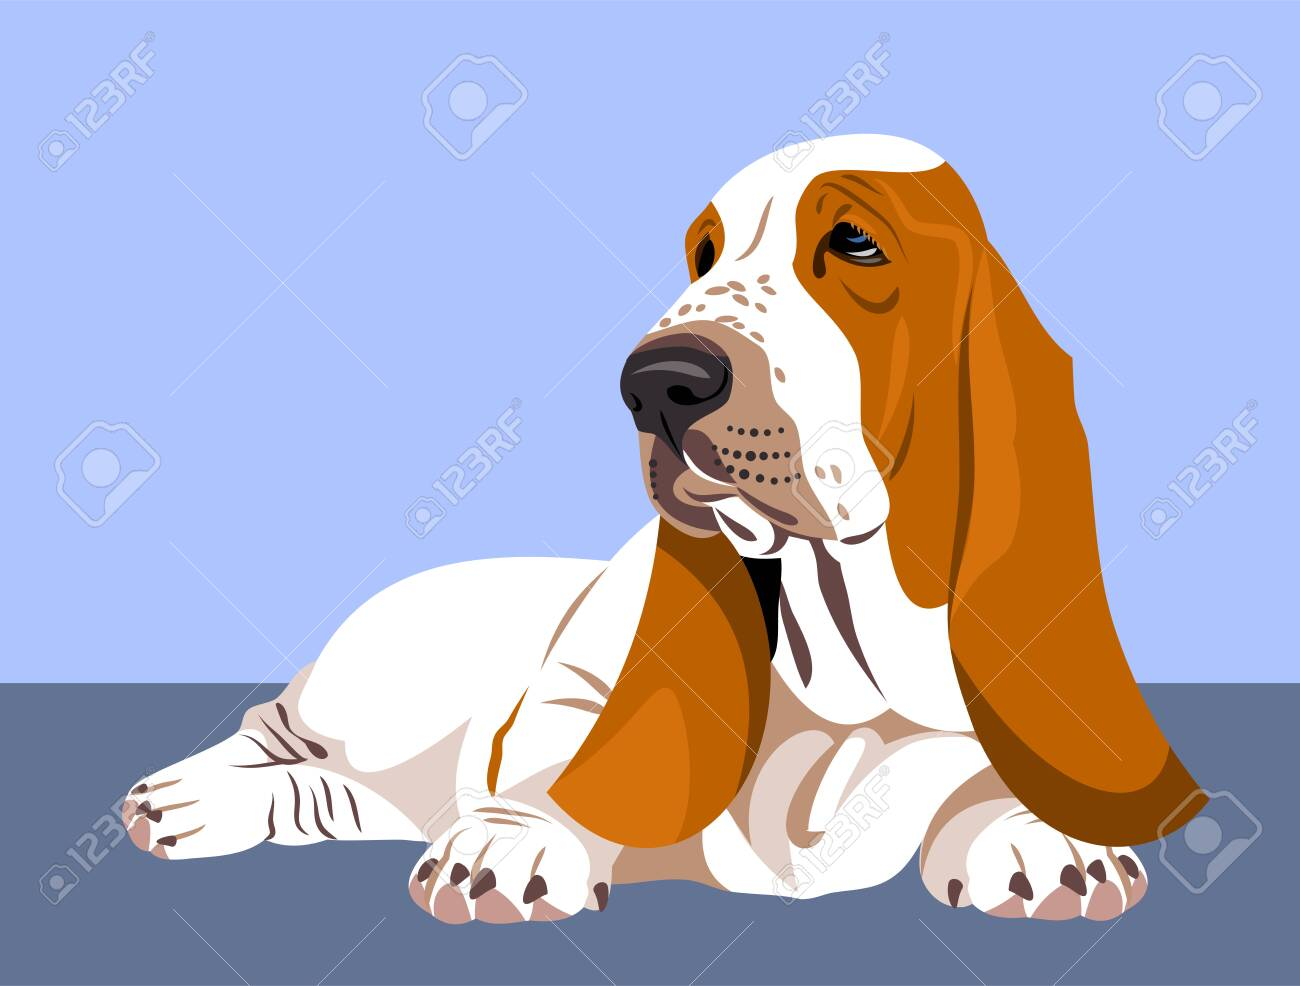 Funny and cute portrait of a dog Basset Hound - 130800583